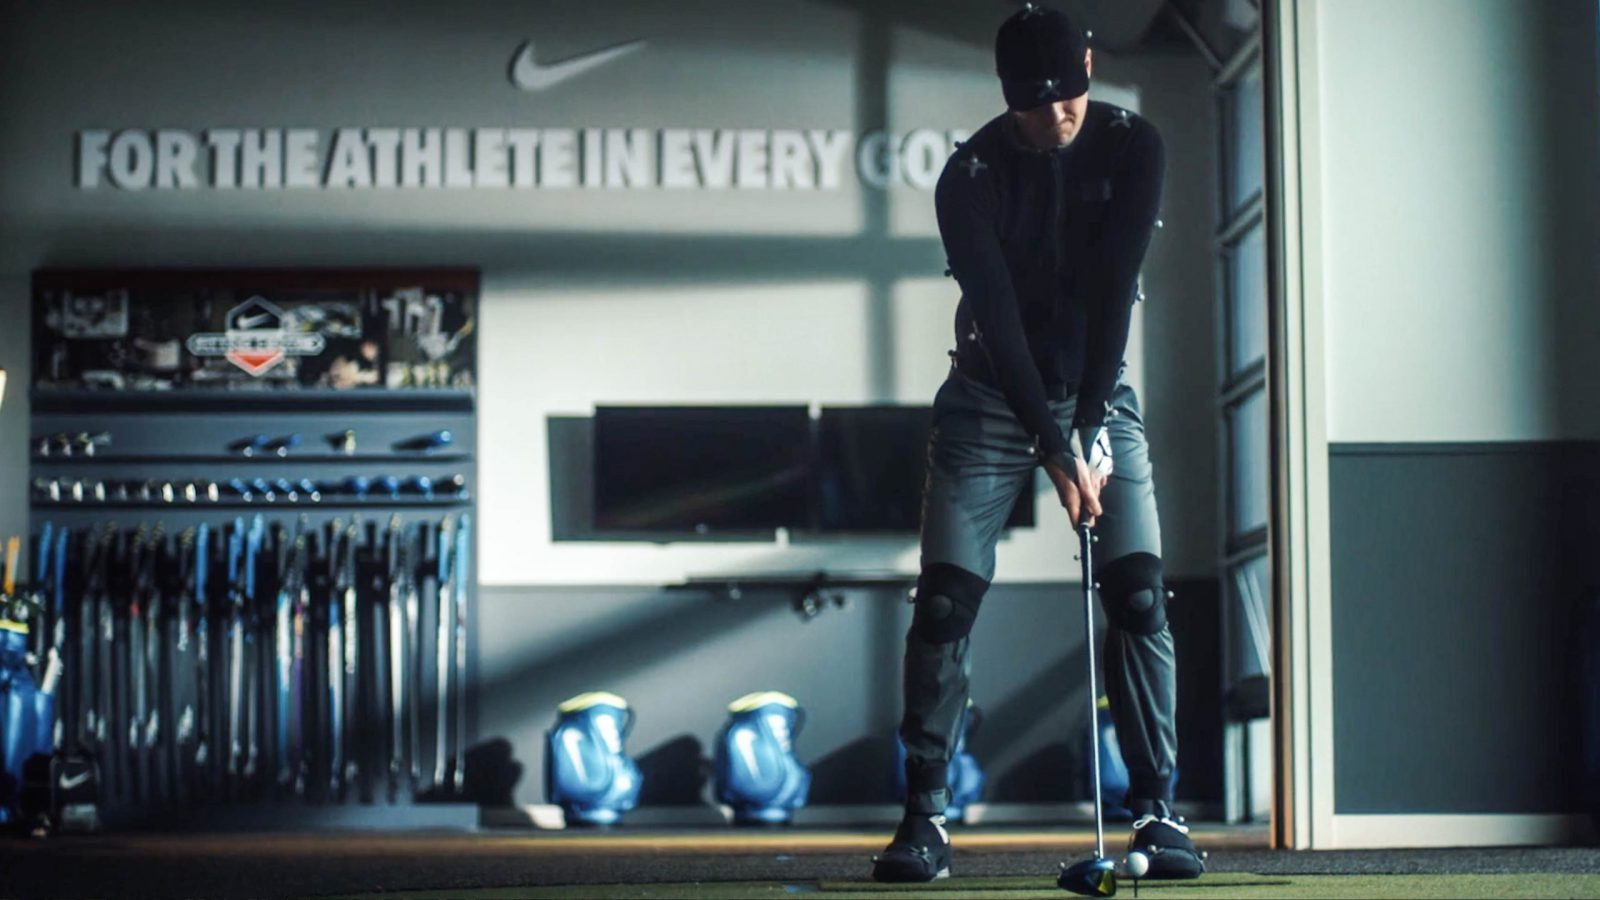 Male golfer with various technology attached to him prepares to hit a golf ball